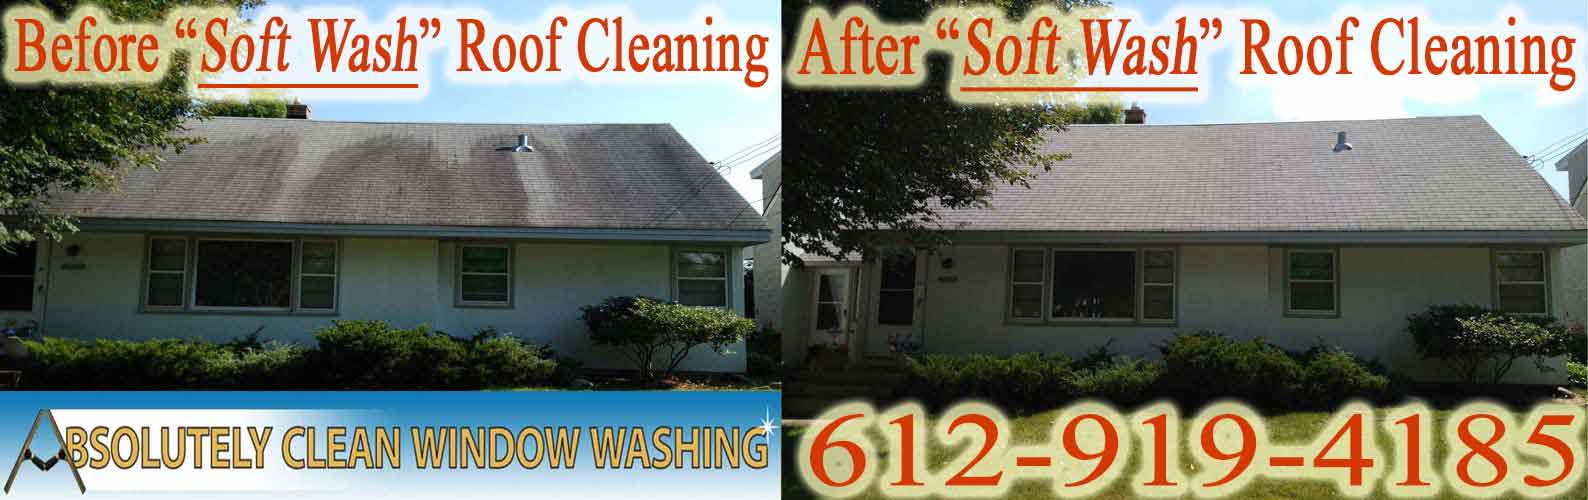 Minneapolis-MN-Soft-Wash-Roof-Cleaning